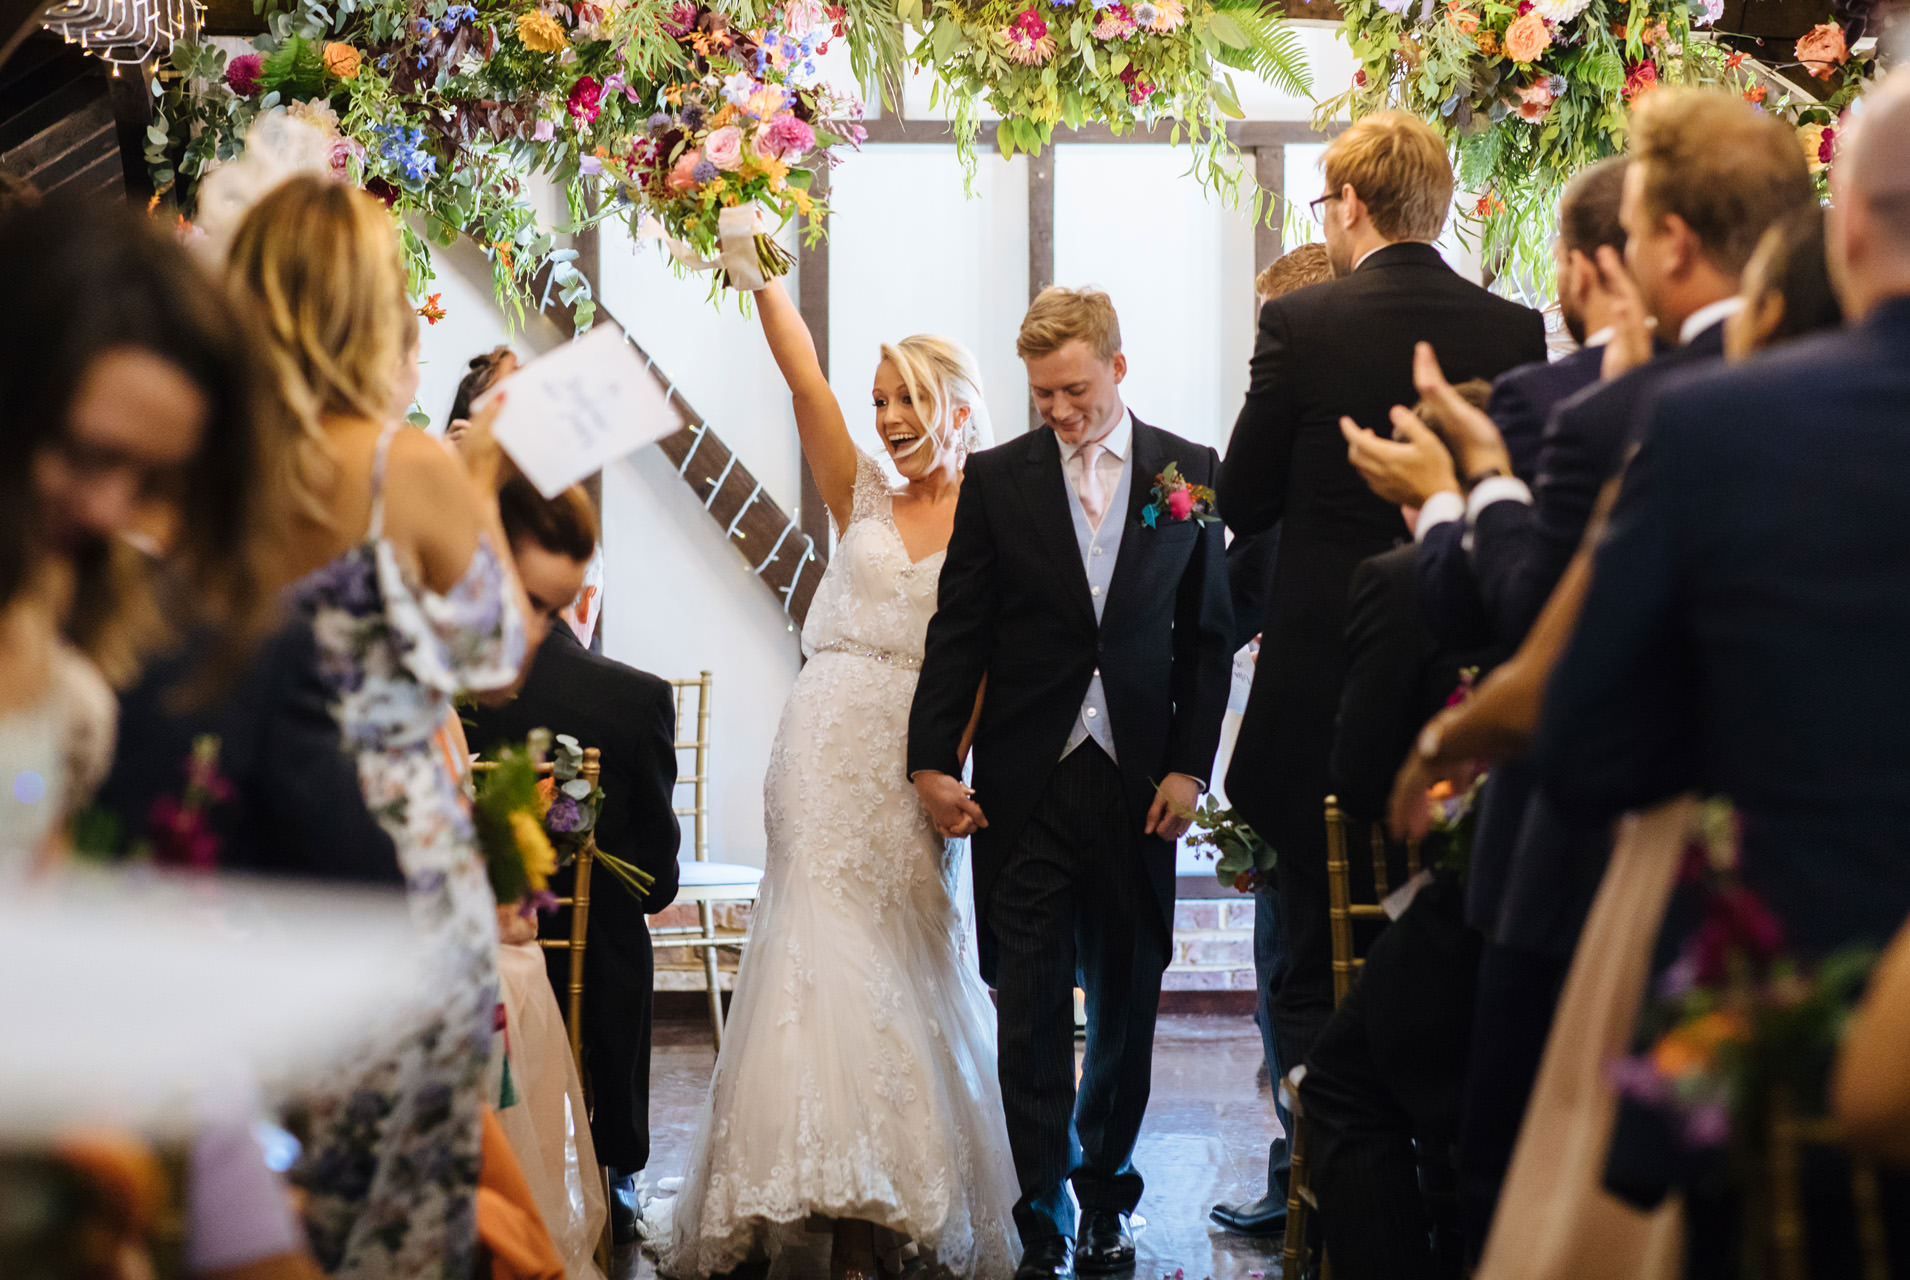 bride throwing bouquet up in the air in joy as they walk back down the aisle